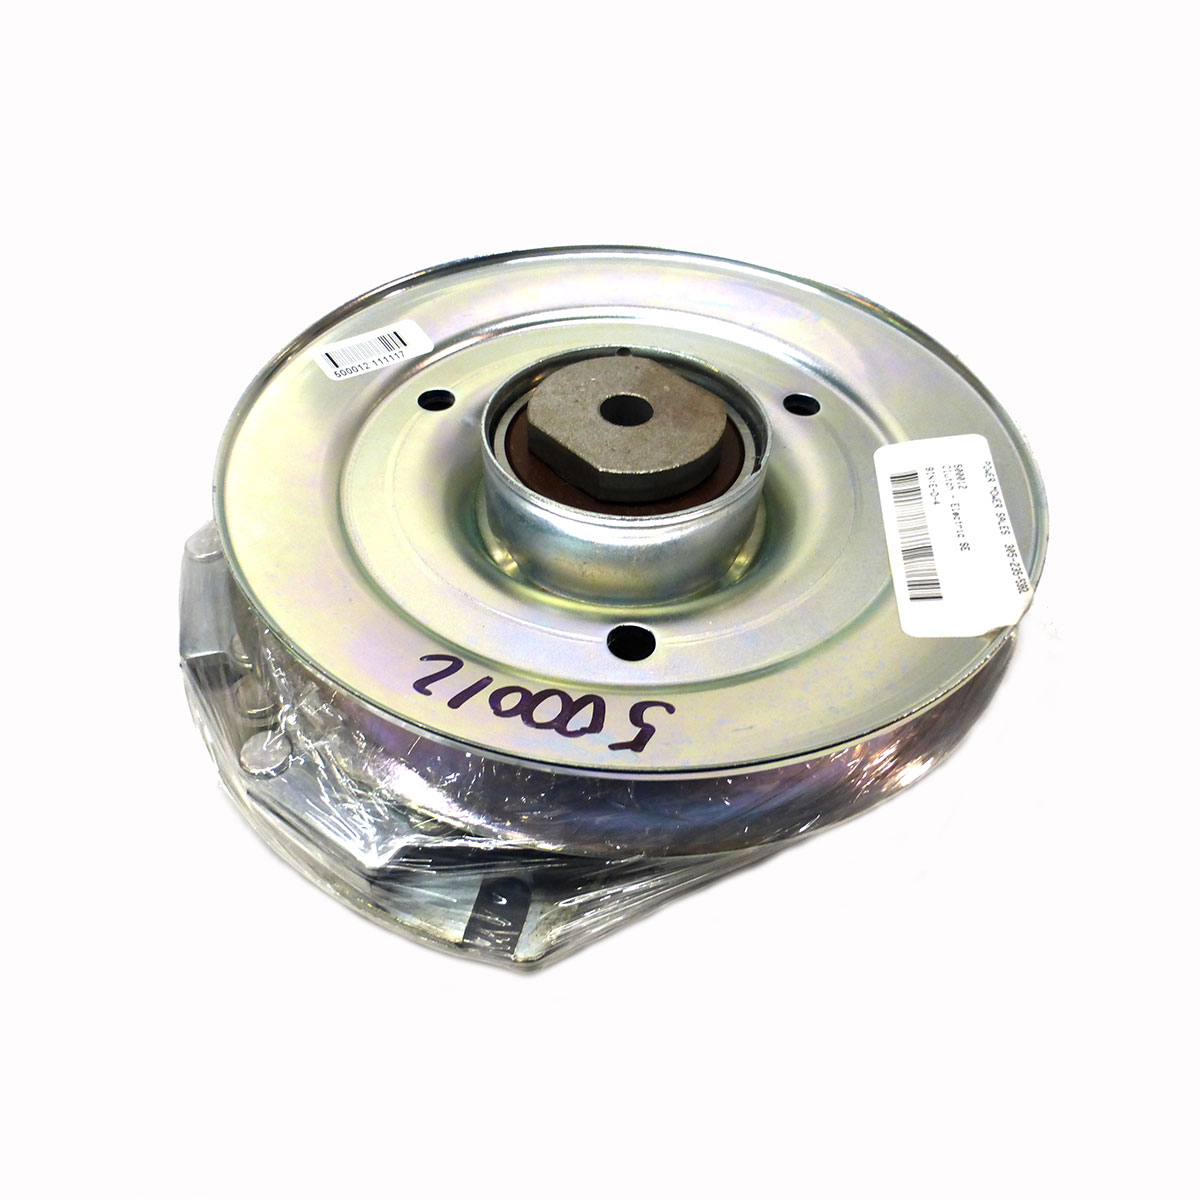 hight resolution of home clutches 500012 dixie chopper silver eagle electric clutch